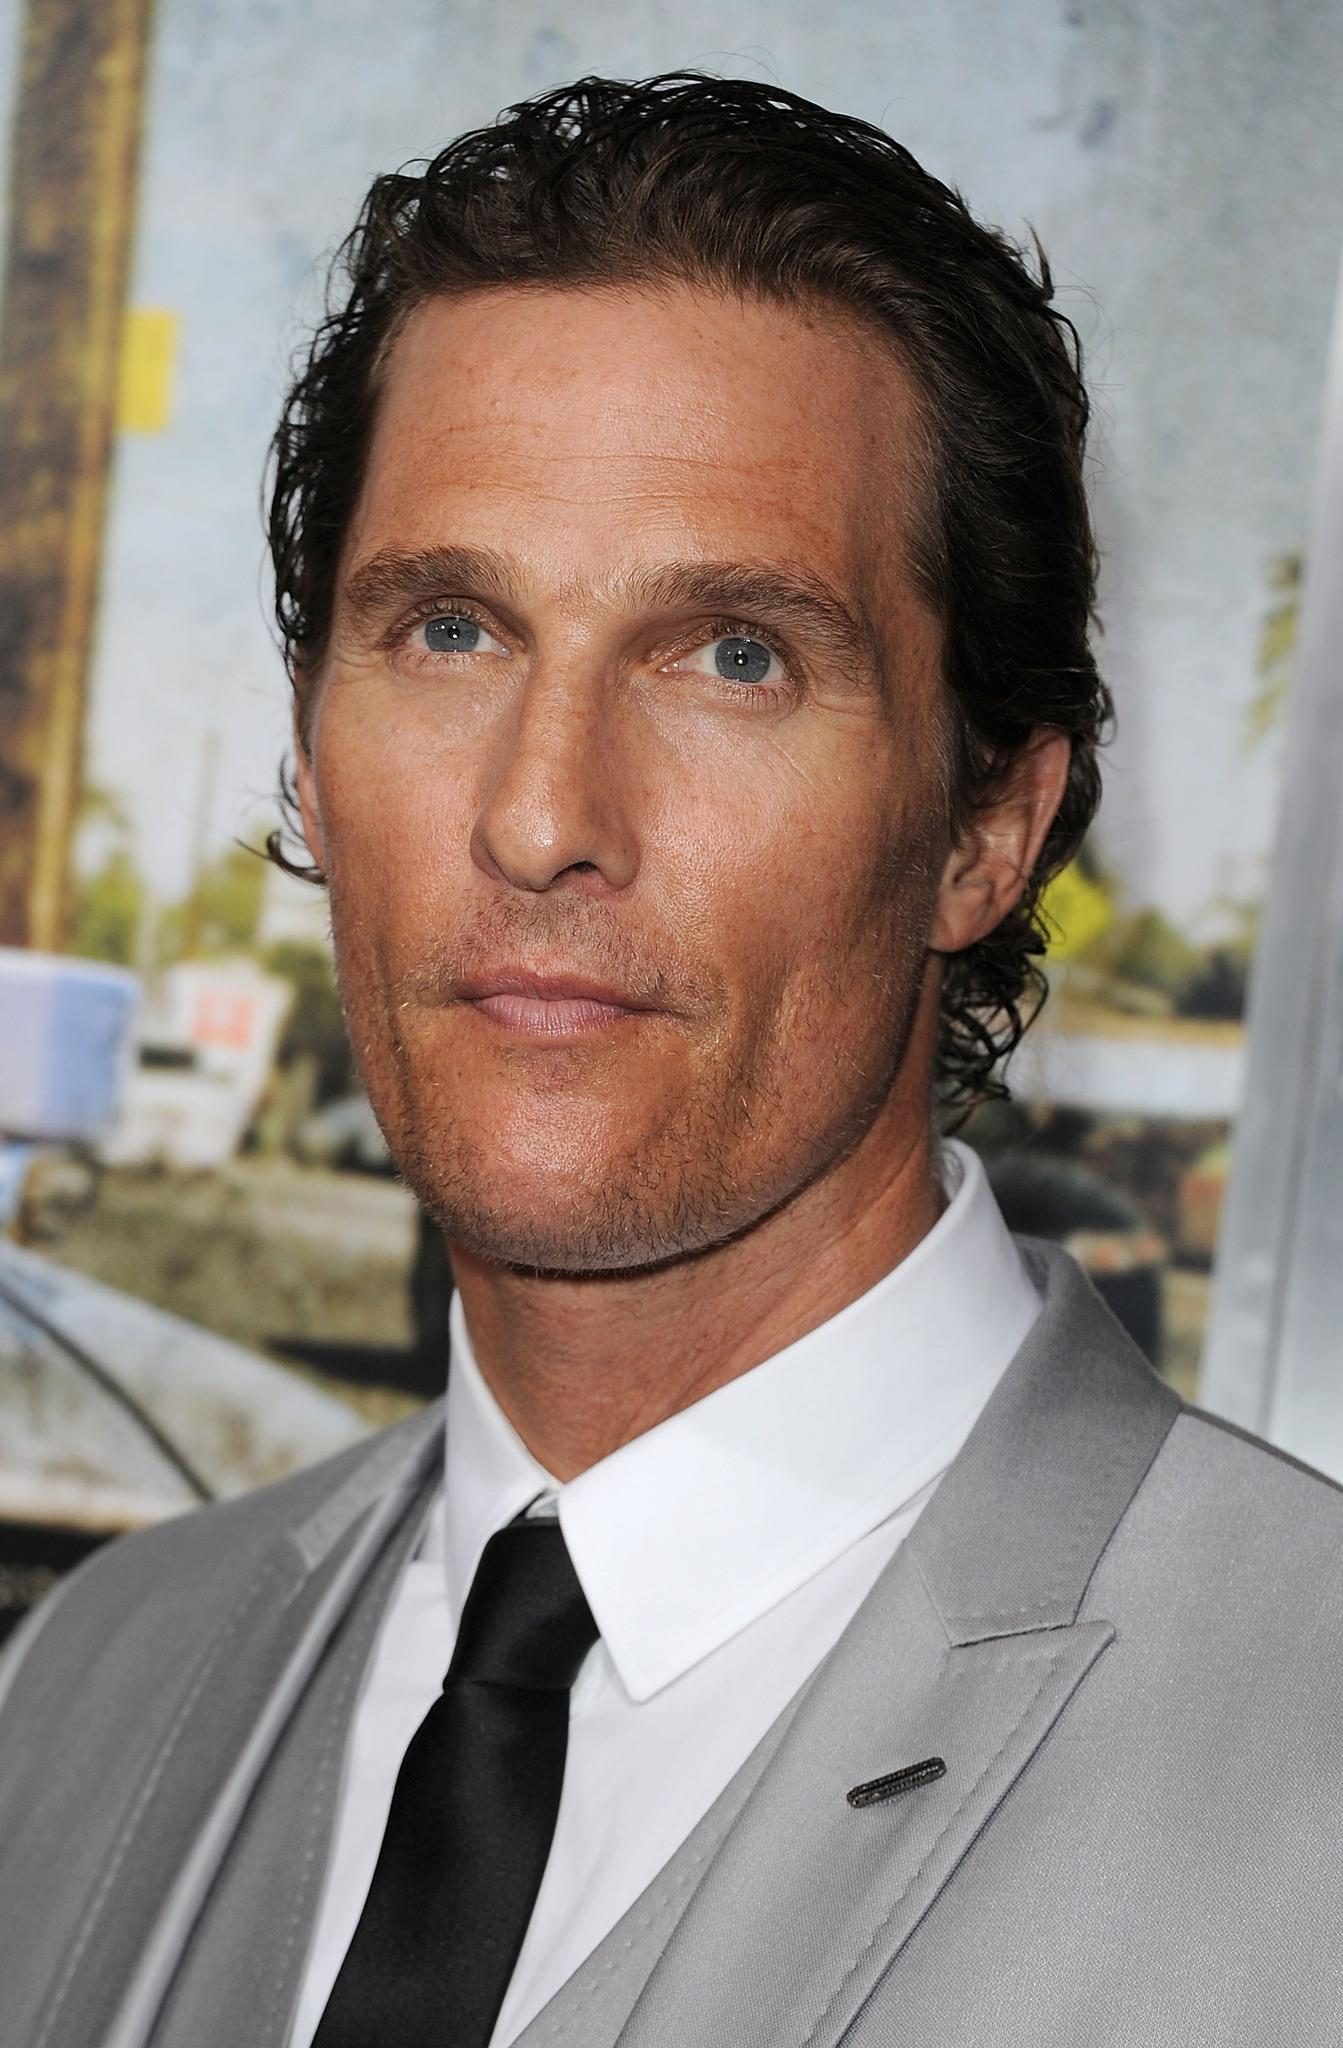 Full Hd Wallpaper Pack Free Download Matthew Mcconaughey 441707 Wallpapers High Quality